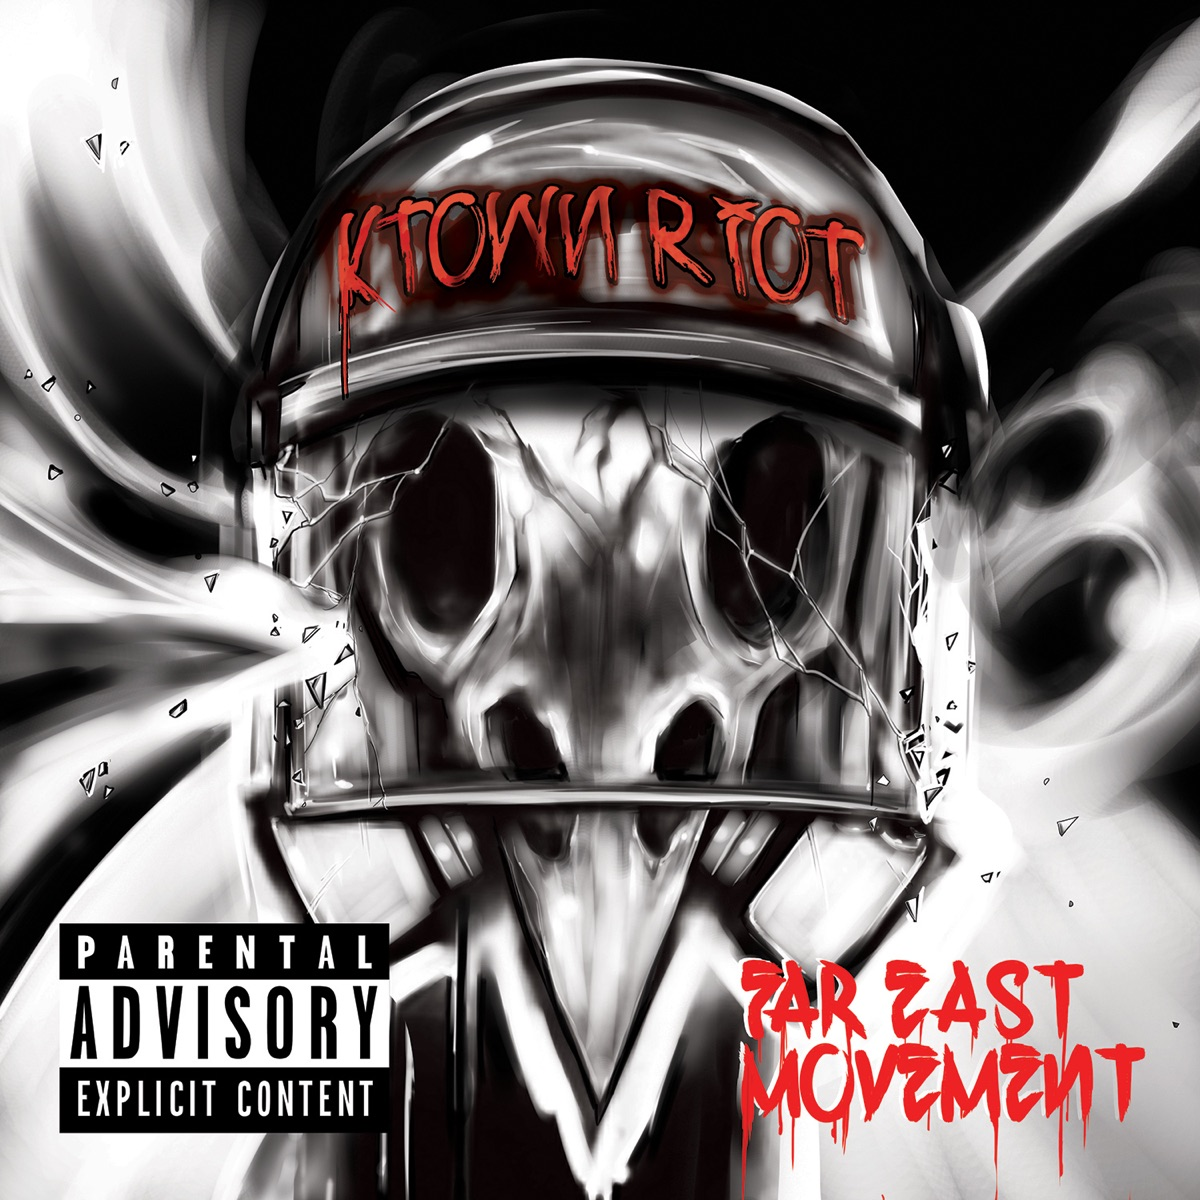 KTown Riot - EP Album Cover by Far East Movement